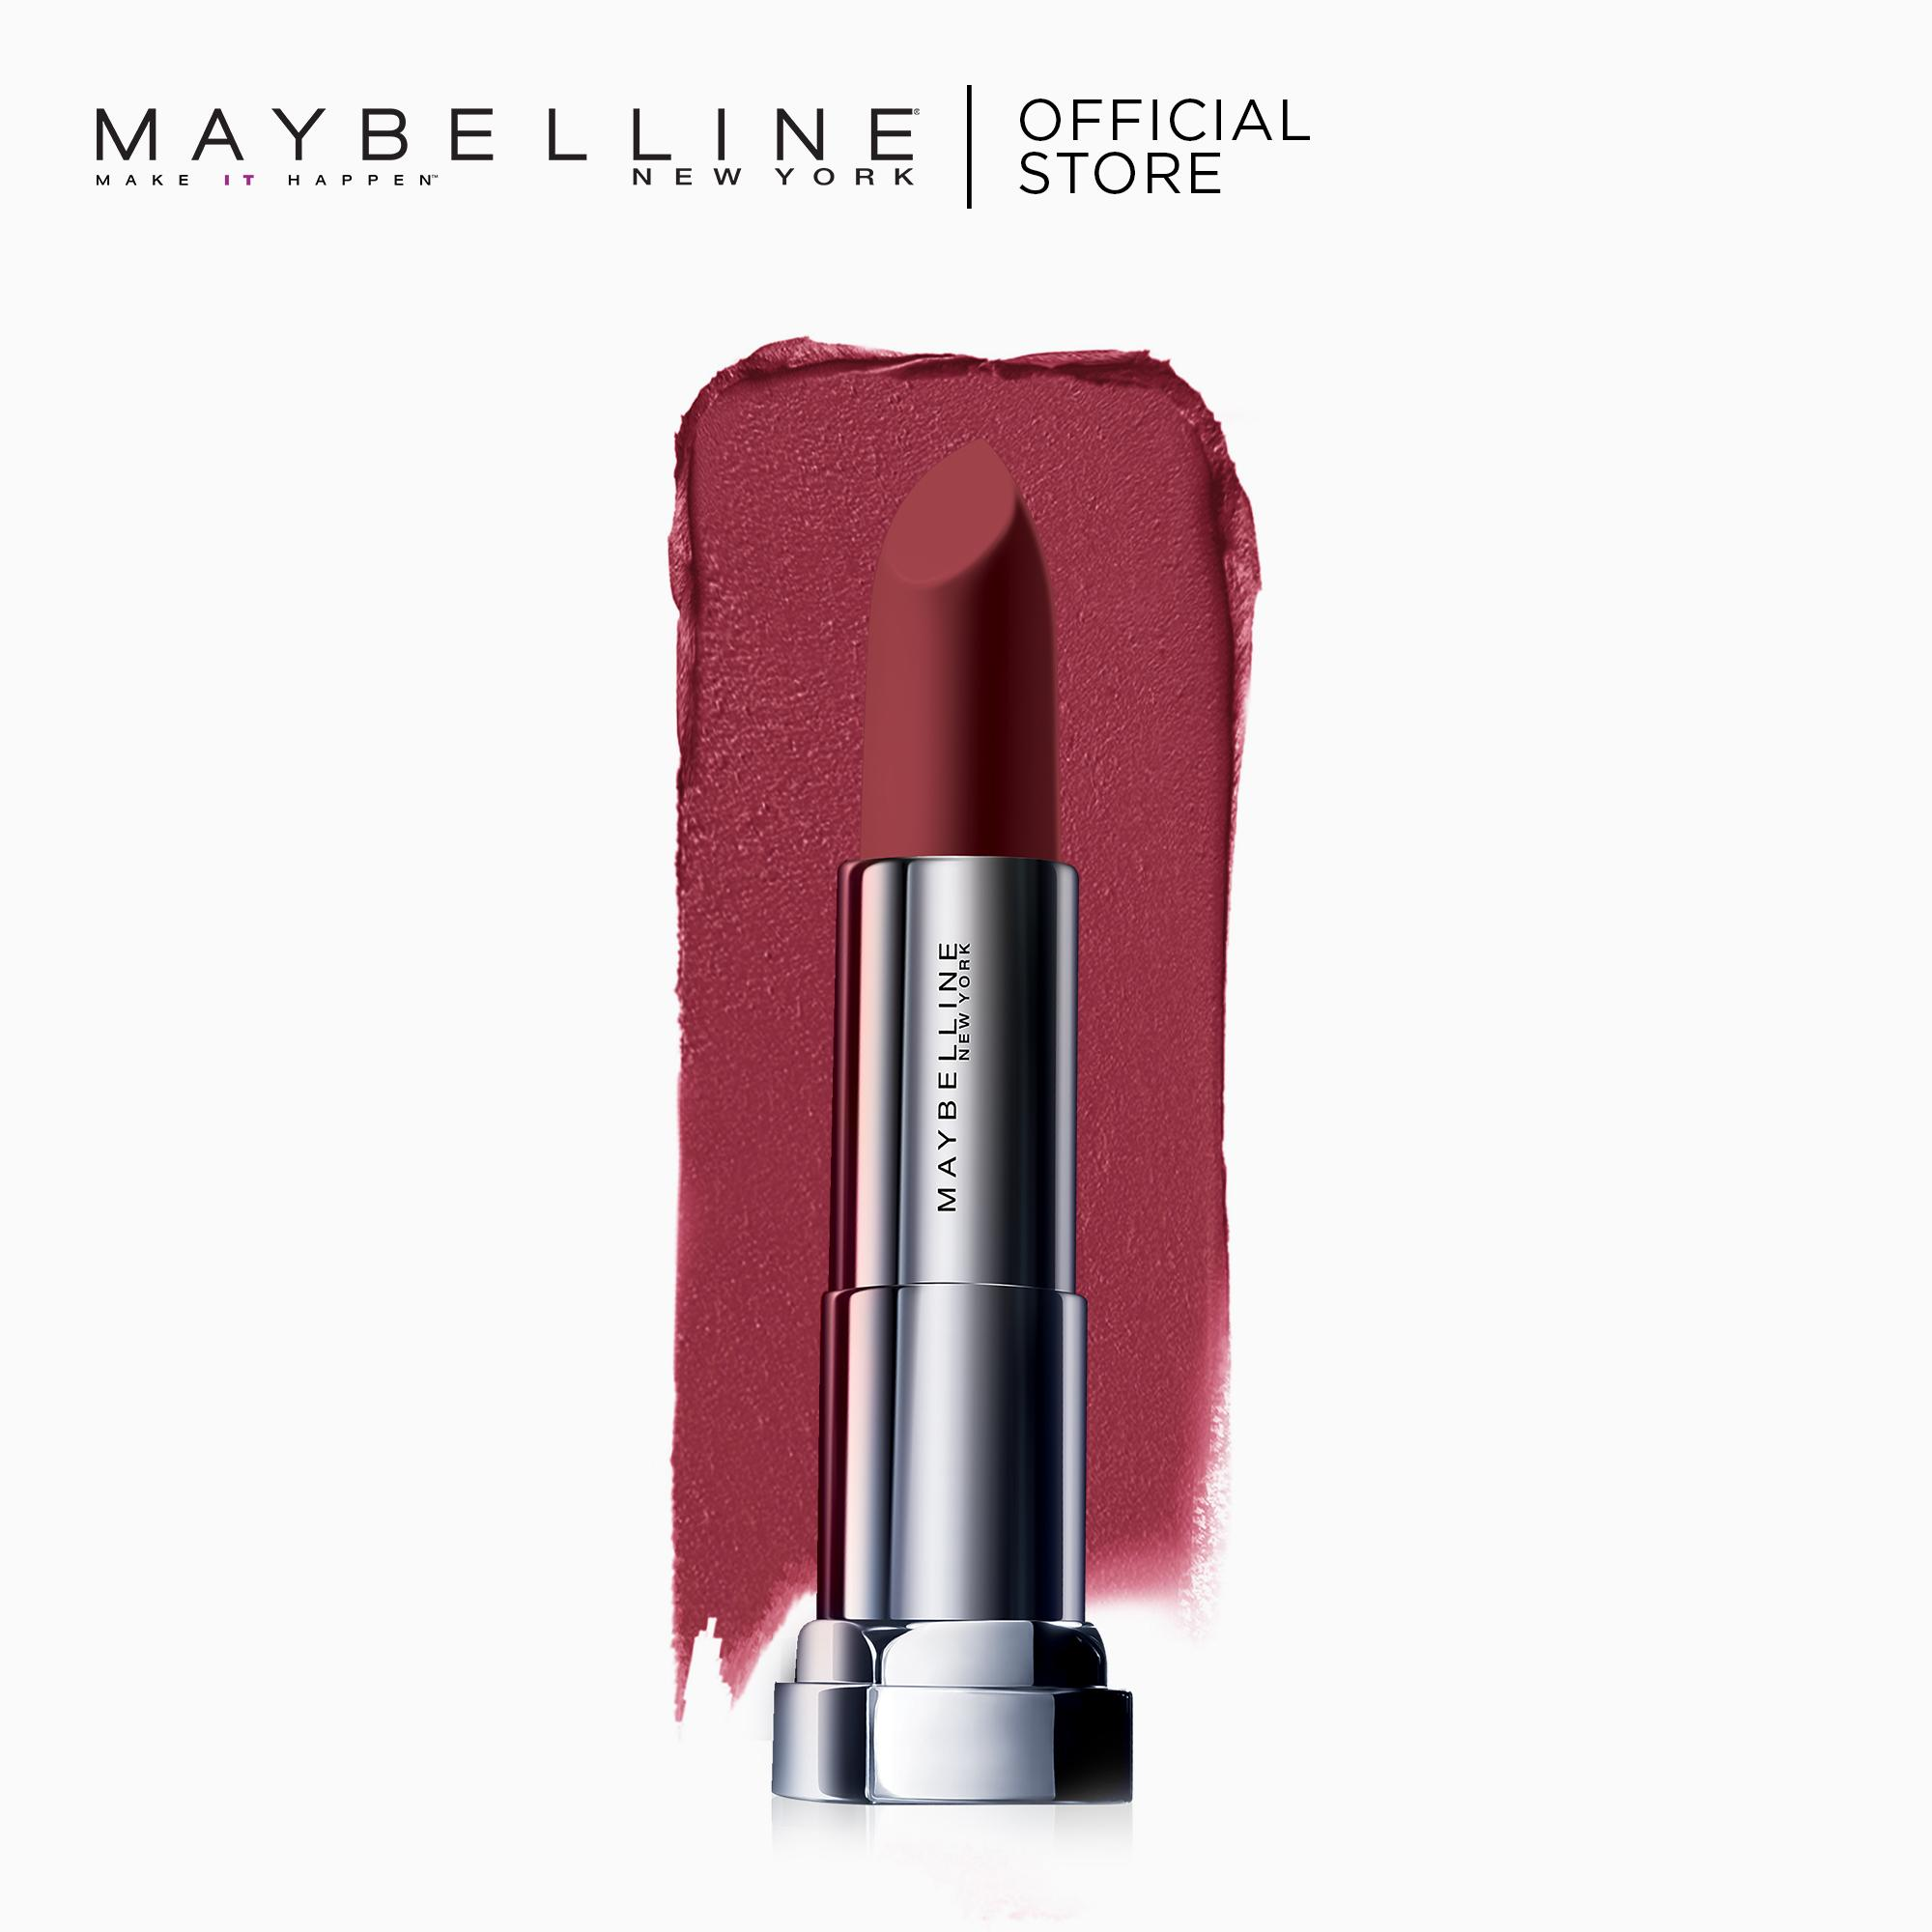 Maybelline Color Sensational Powder Matte Lipstick (Plum Perfection) Philippines